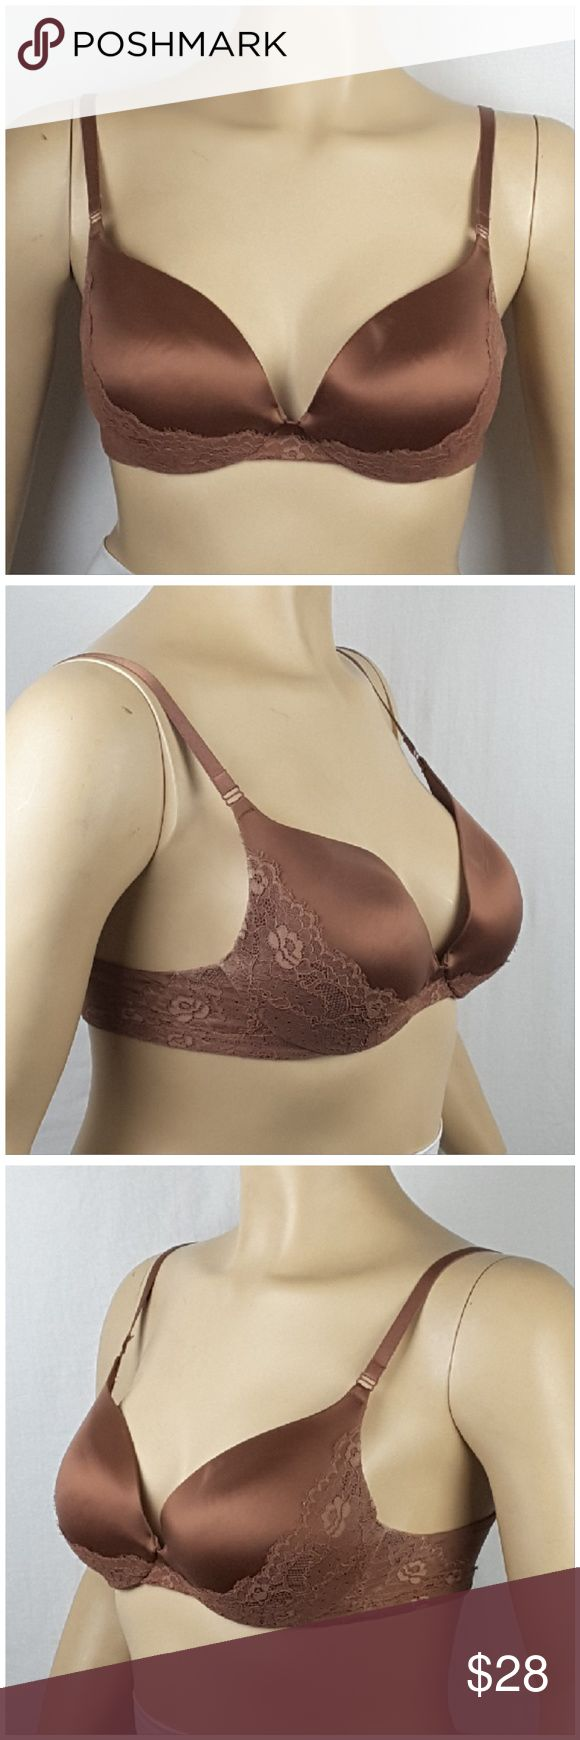 *PLUS* MAIDENFORM, Underwire Bra, size 38D *PLUS* MAIDENFORM, Underwire Bra, size 38D, satin lace, lightly padded, 3 rows double back hooks, style 09408.   SAVE BIG! ADD TO A BUNDLE! 30%  AUTOMATICALLY DISCOUNTED ON ALL BUNDLES! Maidenform Intimates & Sleepwear Bras